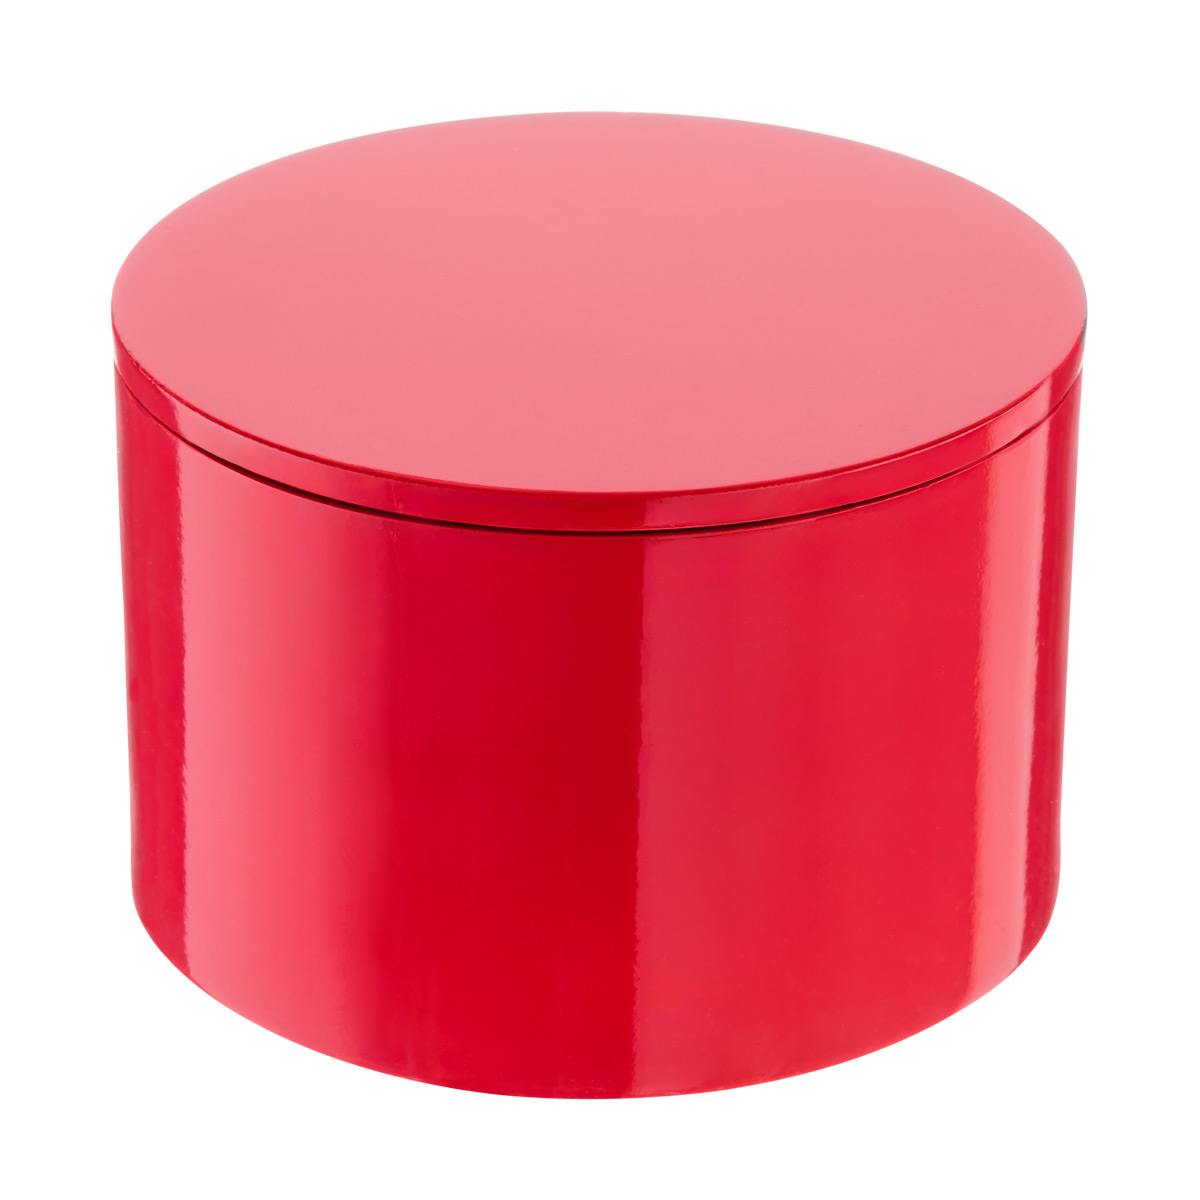 Red Round Lacquered Box